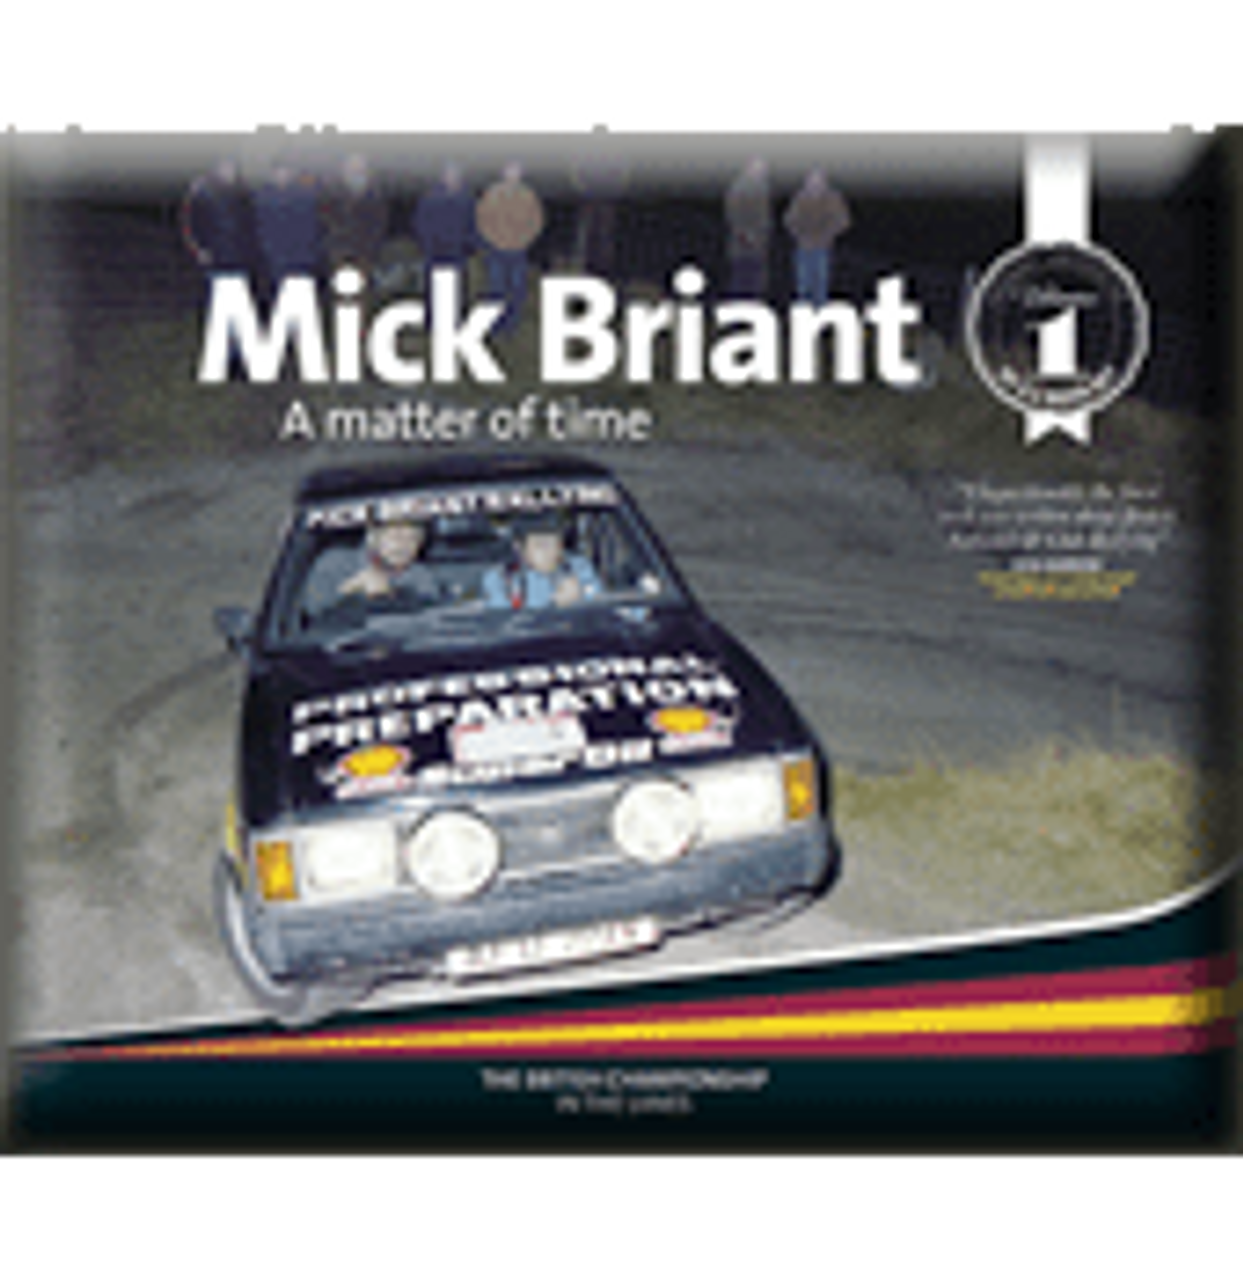 Mick Briant's 'A Matter of Time'